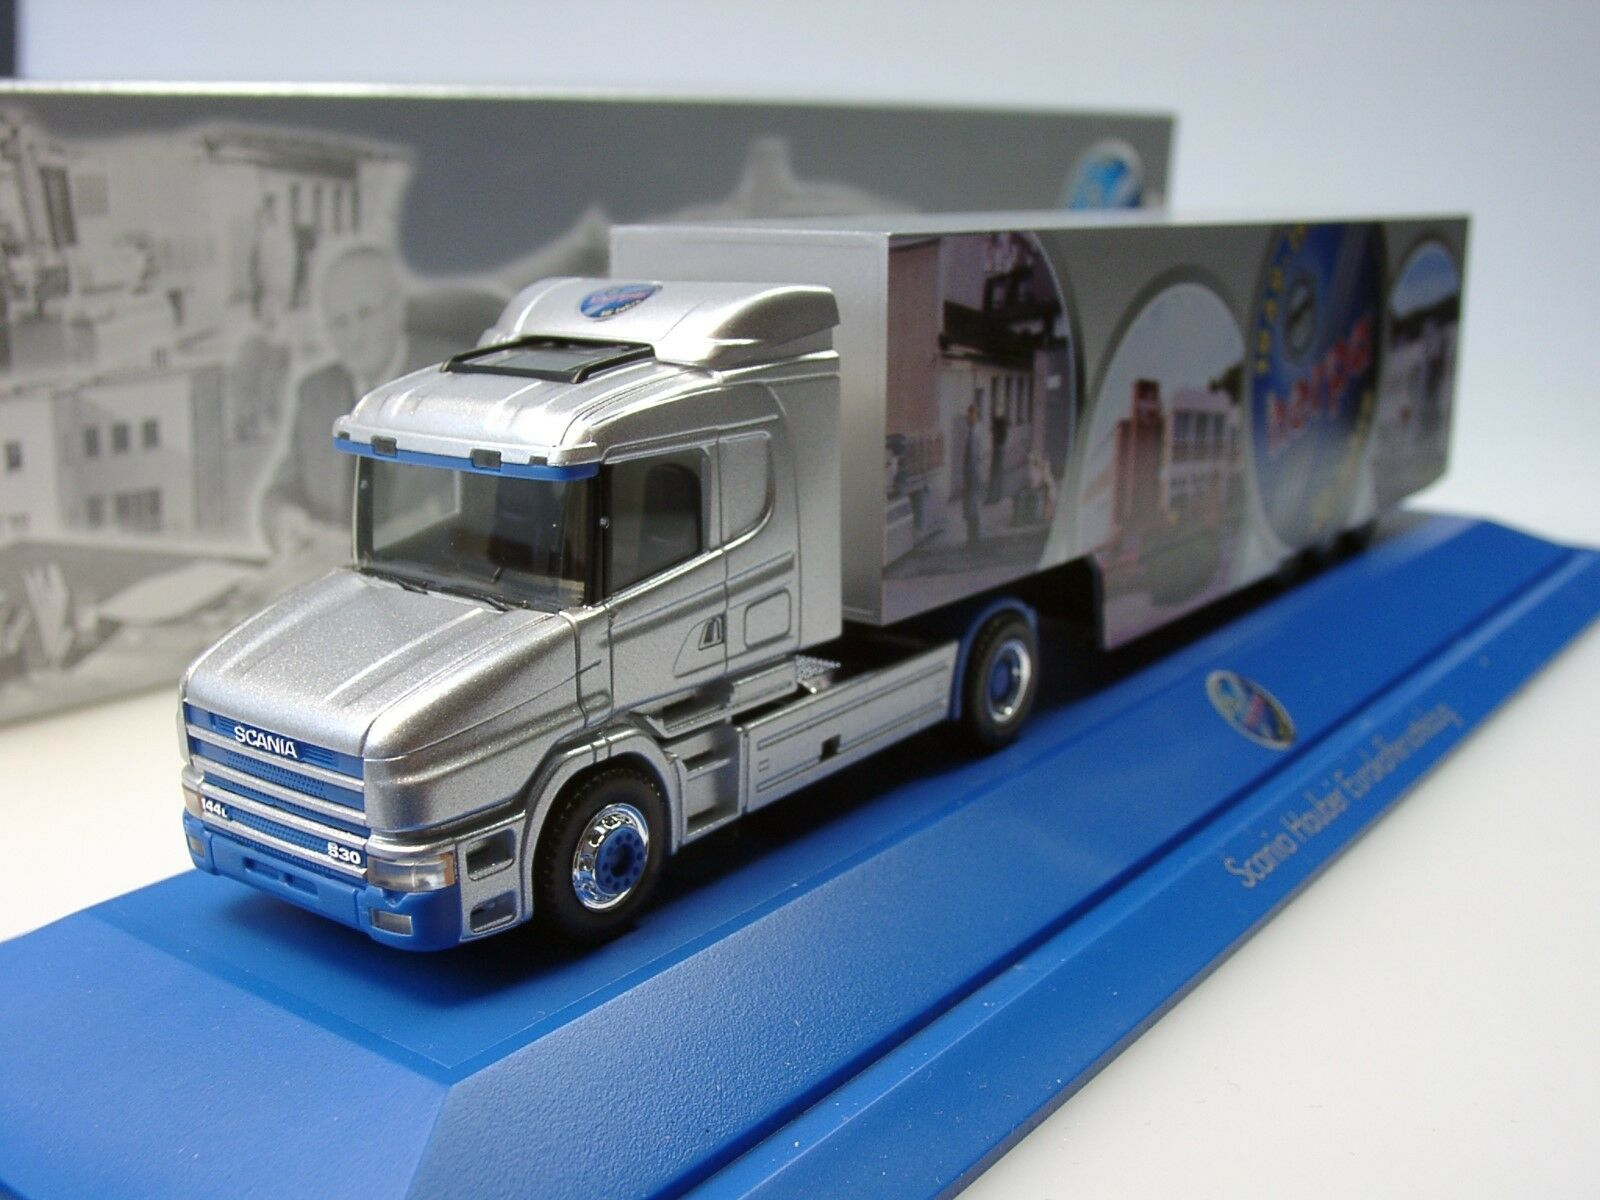 Herpa Scania Hauber 50 ans ans ans Herpa, argent - 188555 - 1 87 019582